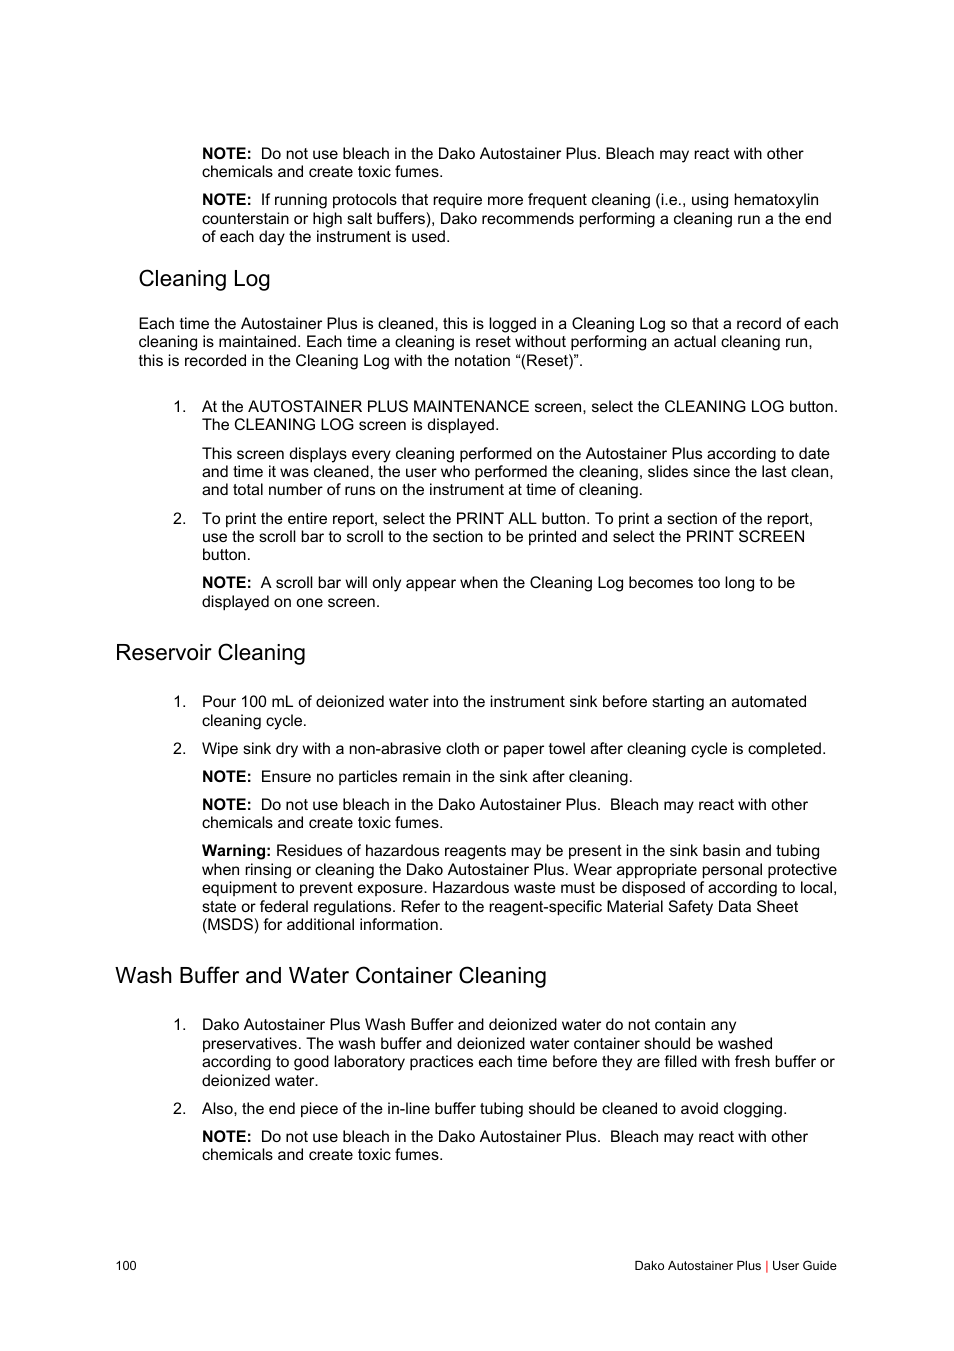 Cleaning log, Reservoir cleaning, Wash buffer and water container cleaning  | Dako Autostainer Plus User Manual | Page 100 / 121